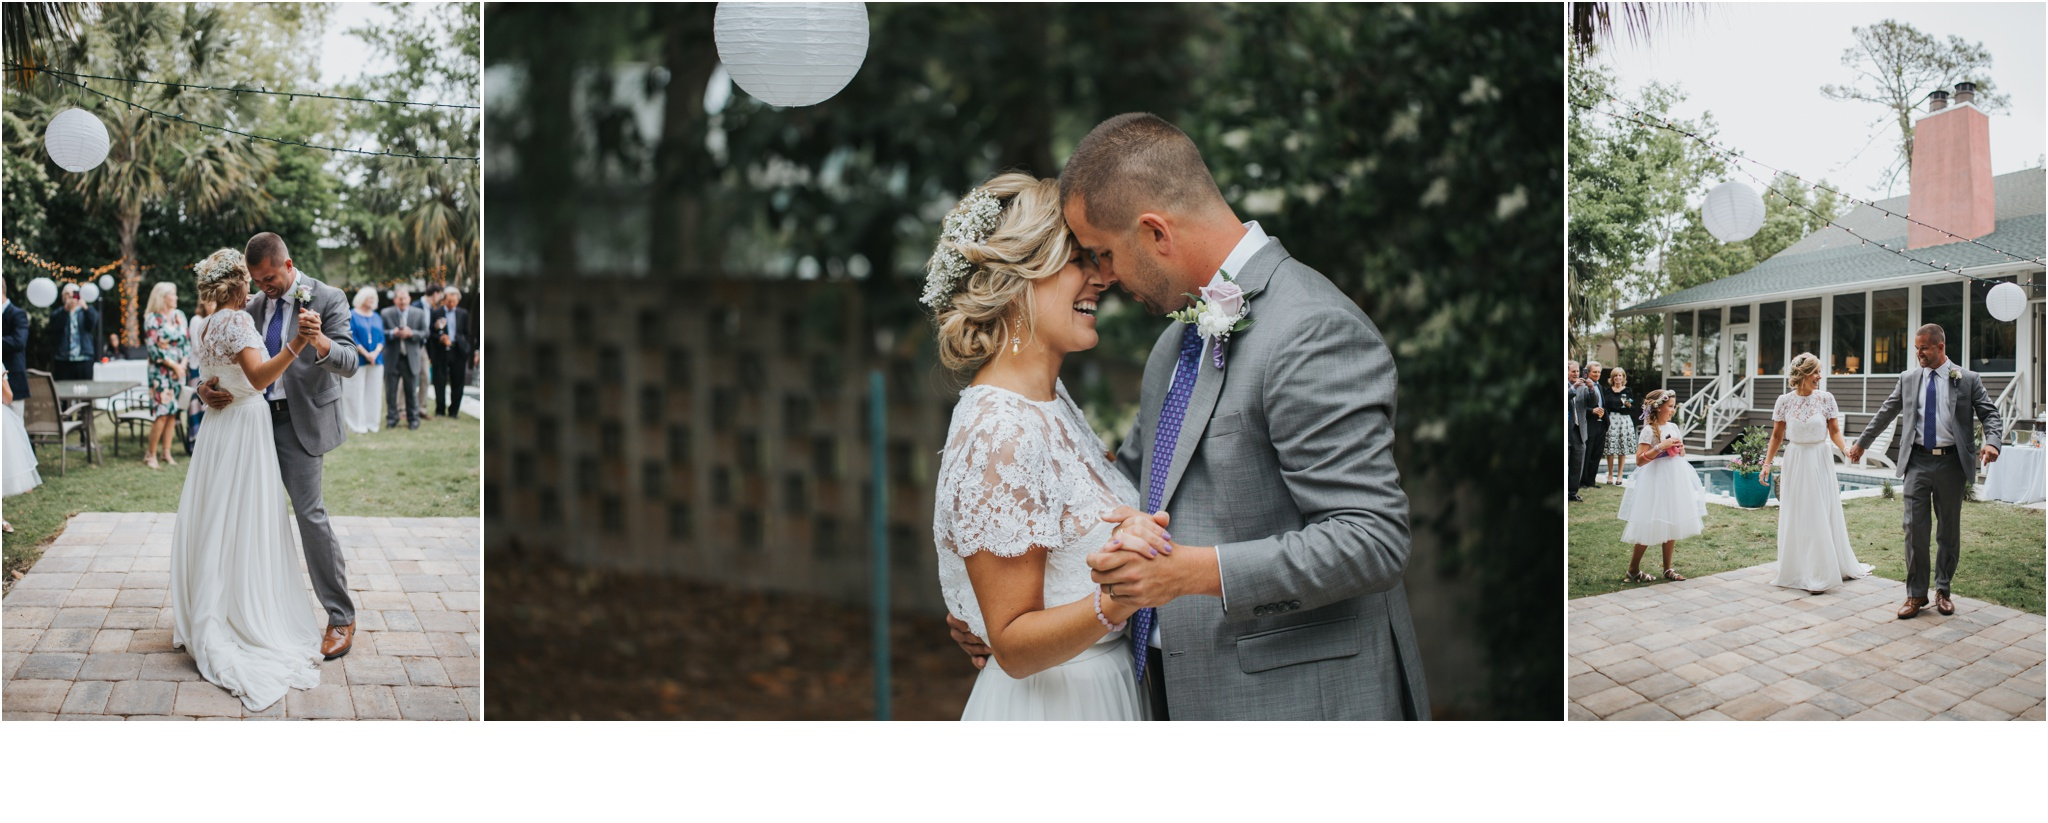 Rainey_Gregg_Photography_St._Simons_Island_Georgia_California_Wedding_Portrait_Photography_1537.jpg